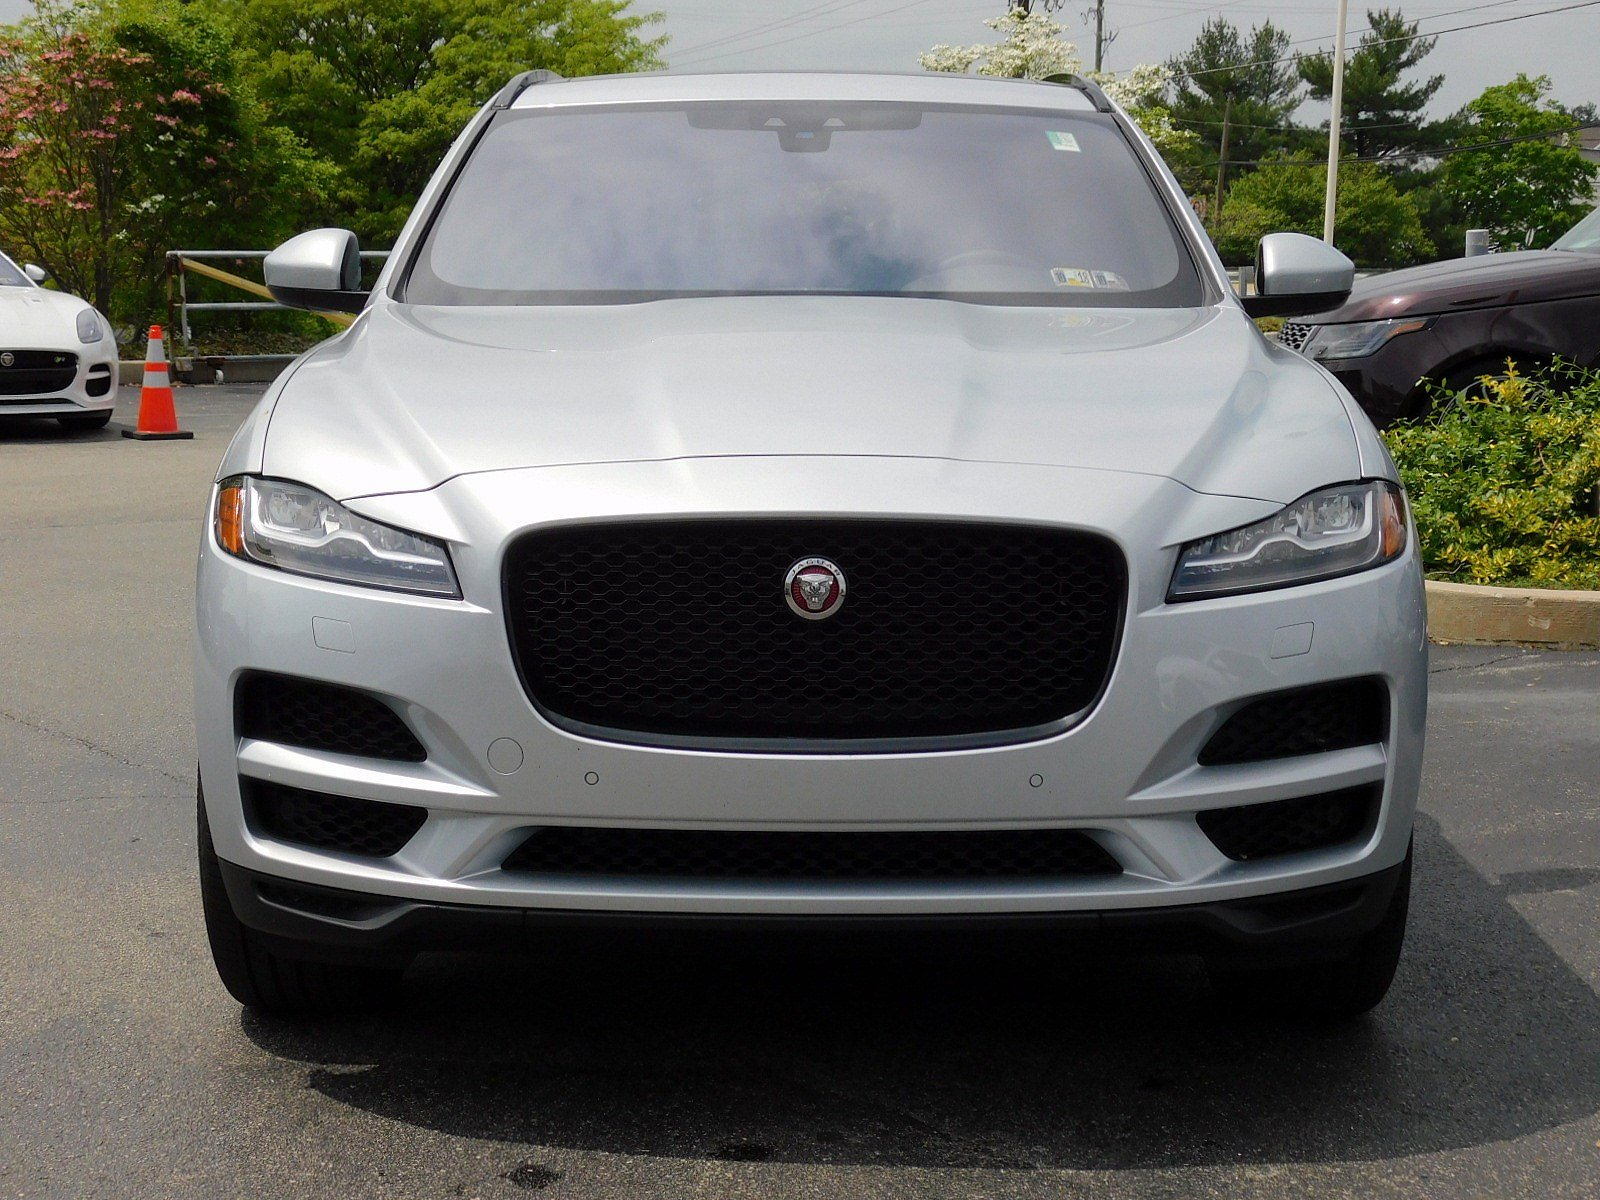 pre htm sale jaguar for near chicago used owned vin certified xf